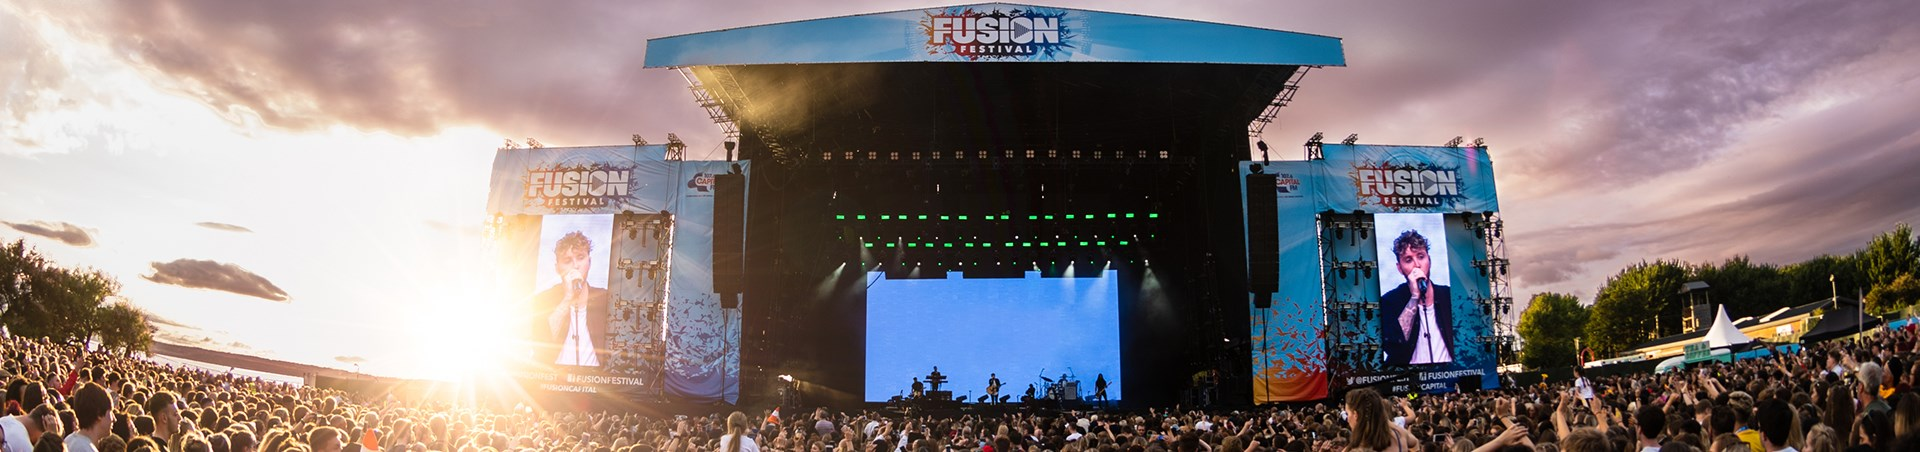 Catch coach travel to Fusion Presents events with National Express